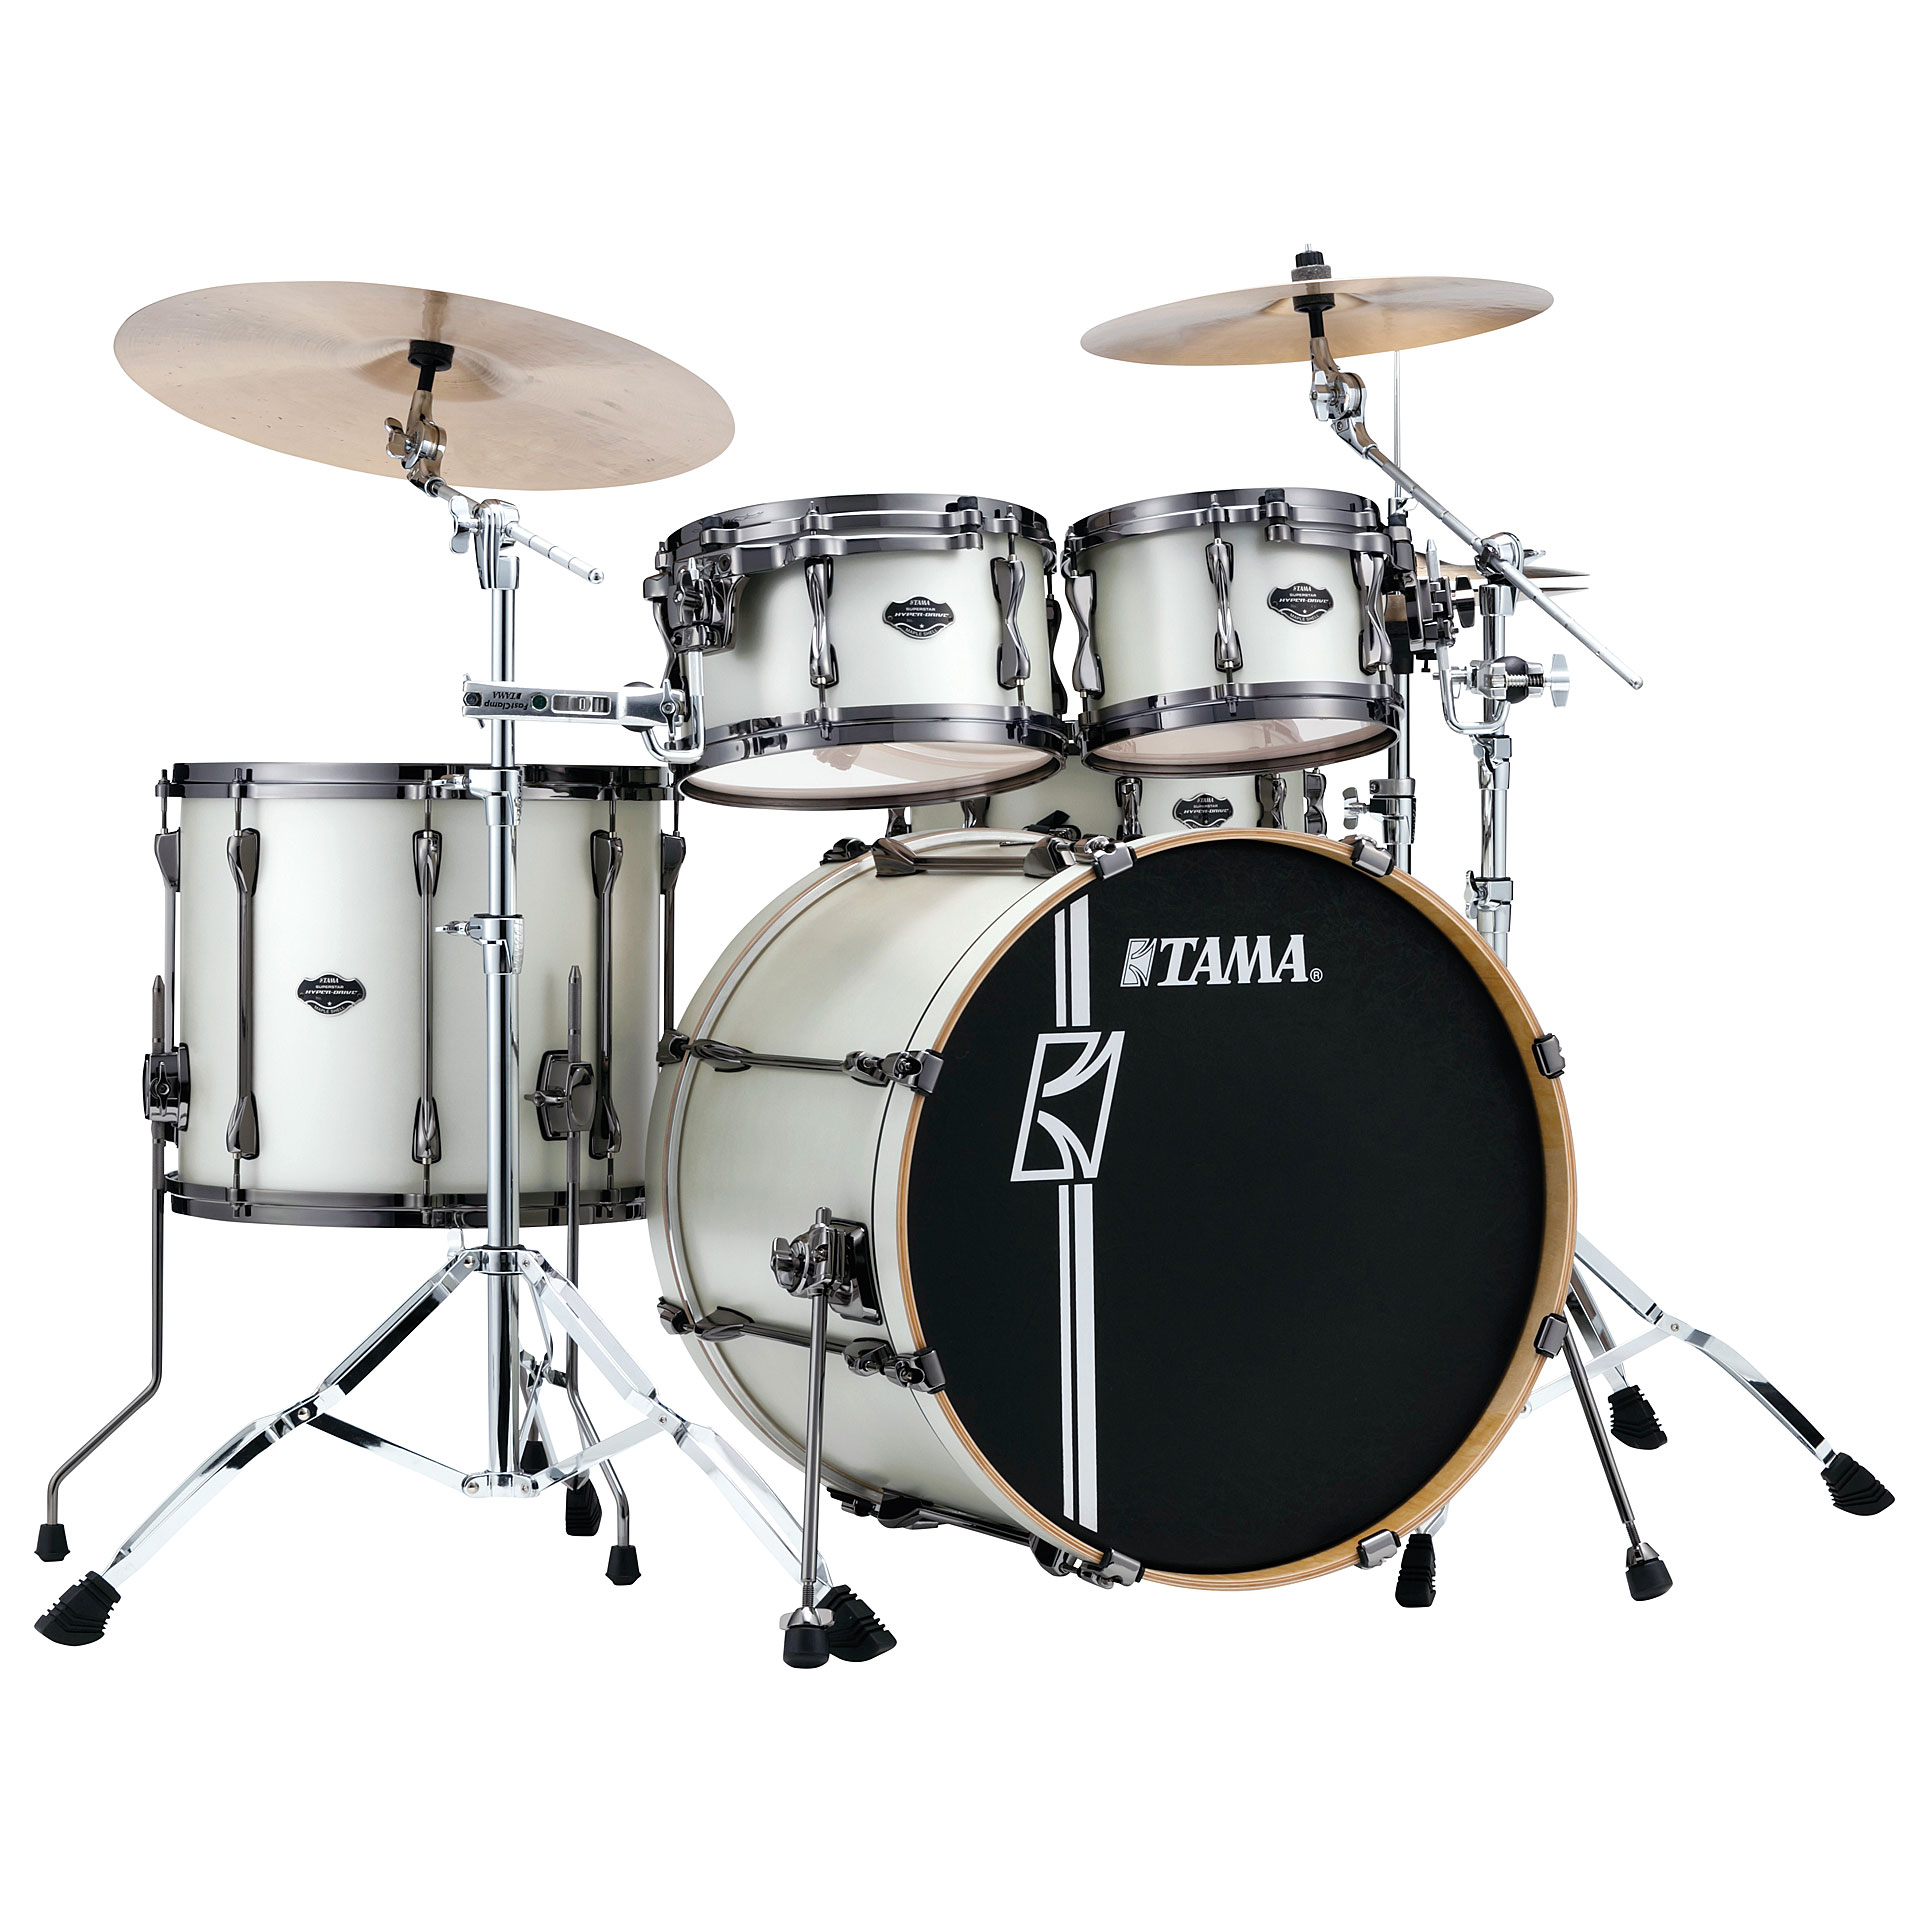 Tama Superstar Custom 22  Satin Arctic Pear      Drum Kit Drum Kit Tama Superstar Custom 22 Satin Arctic Pear